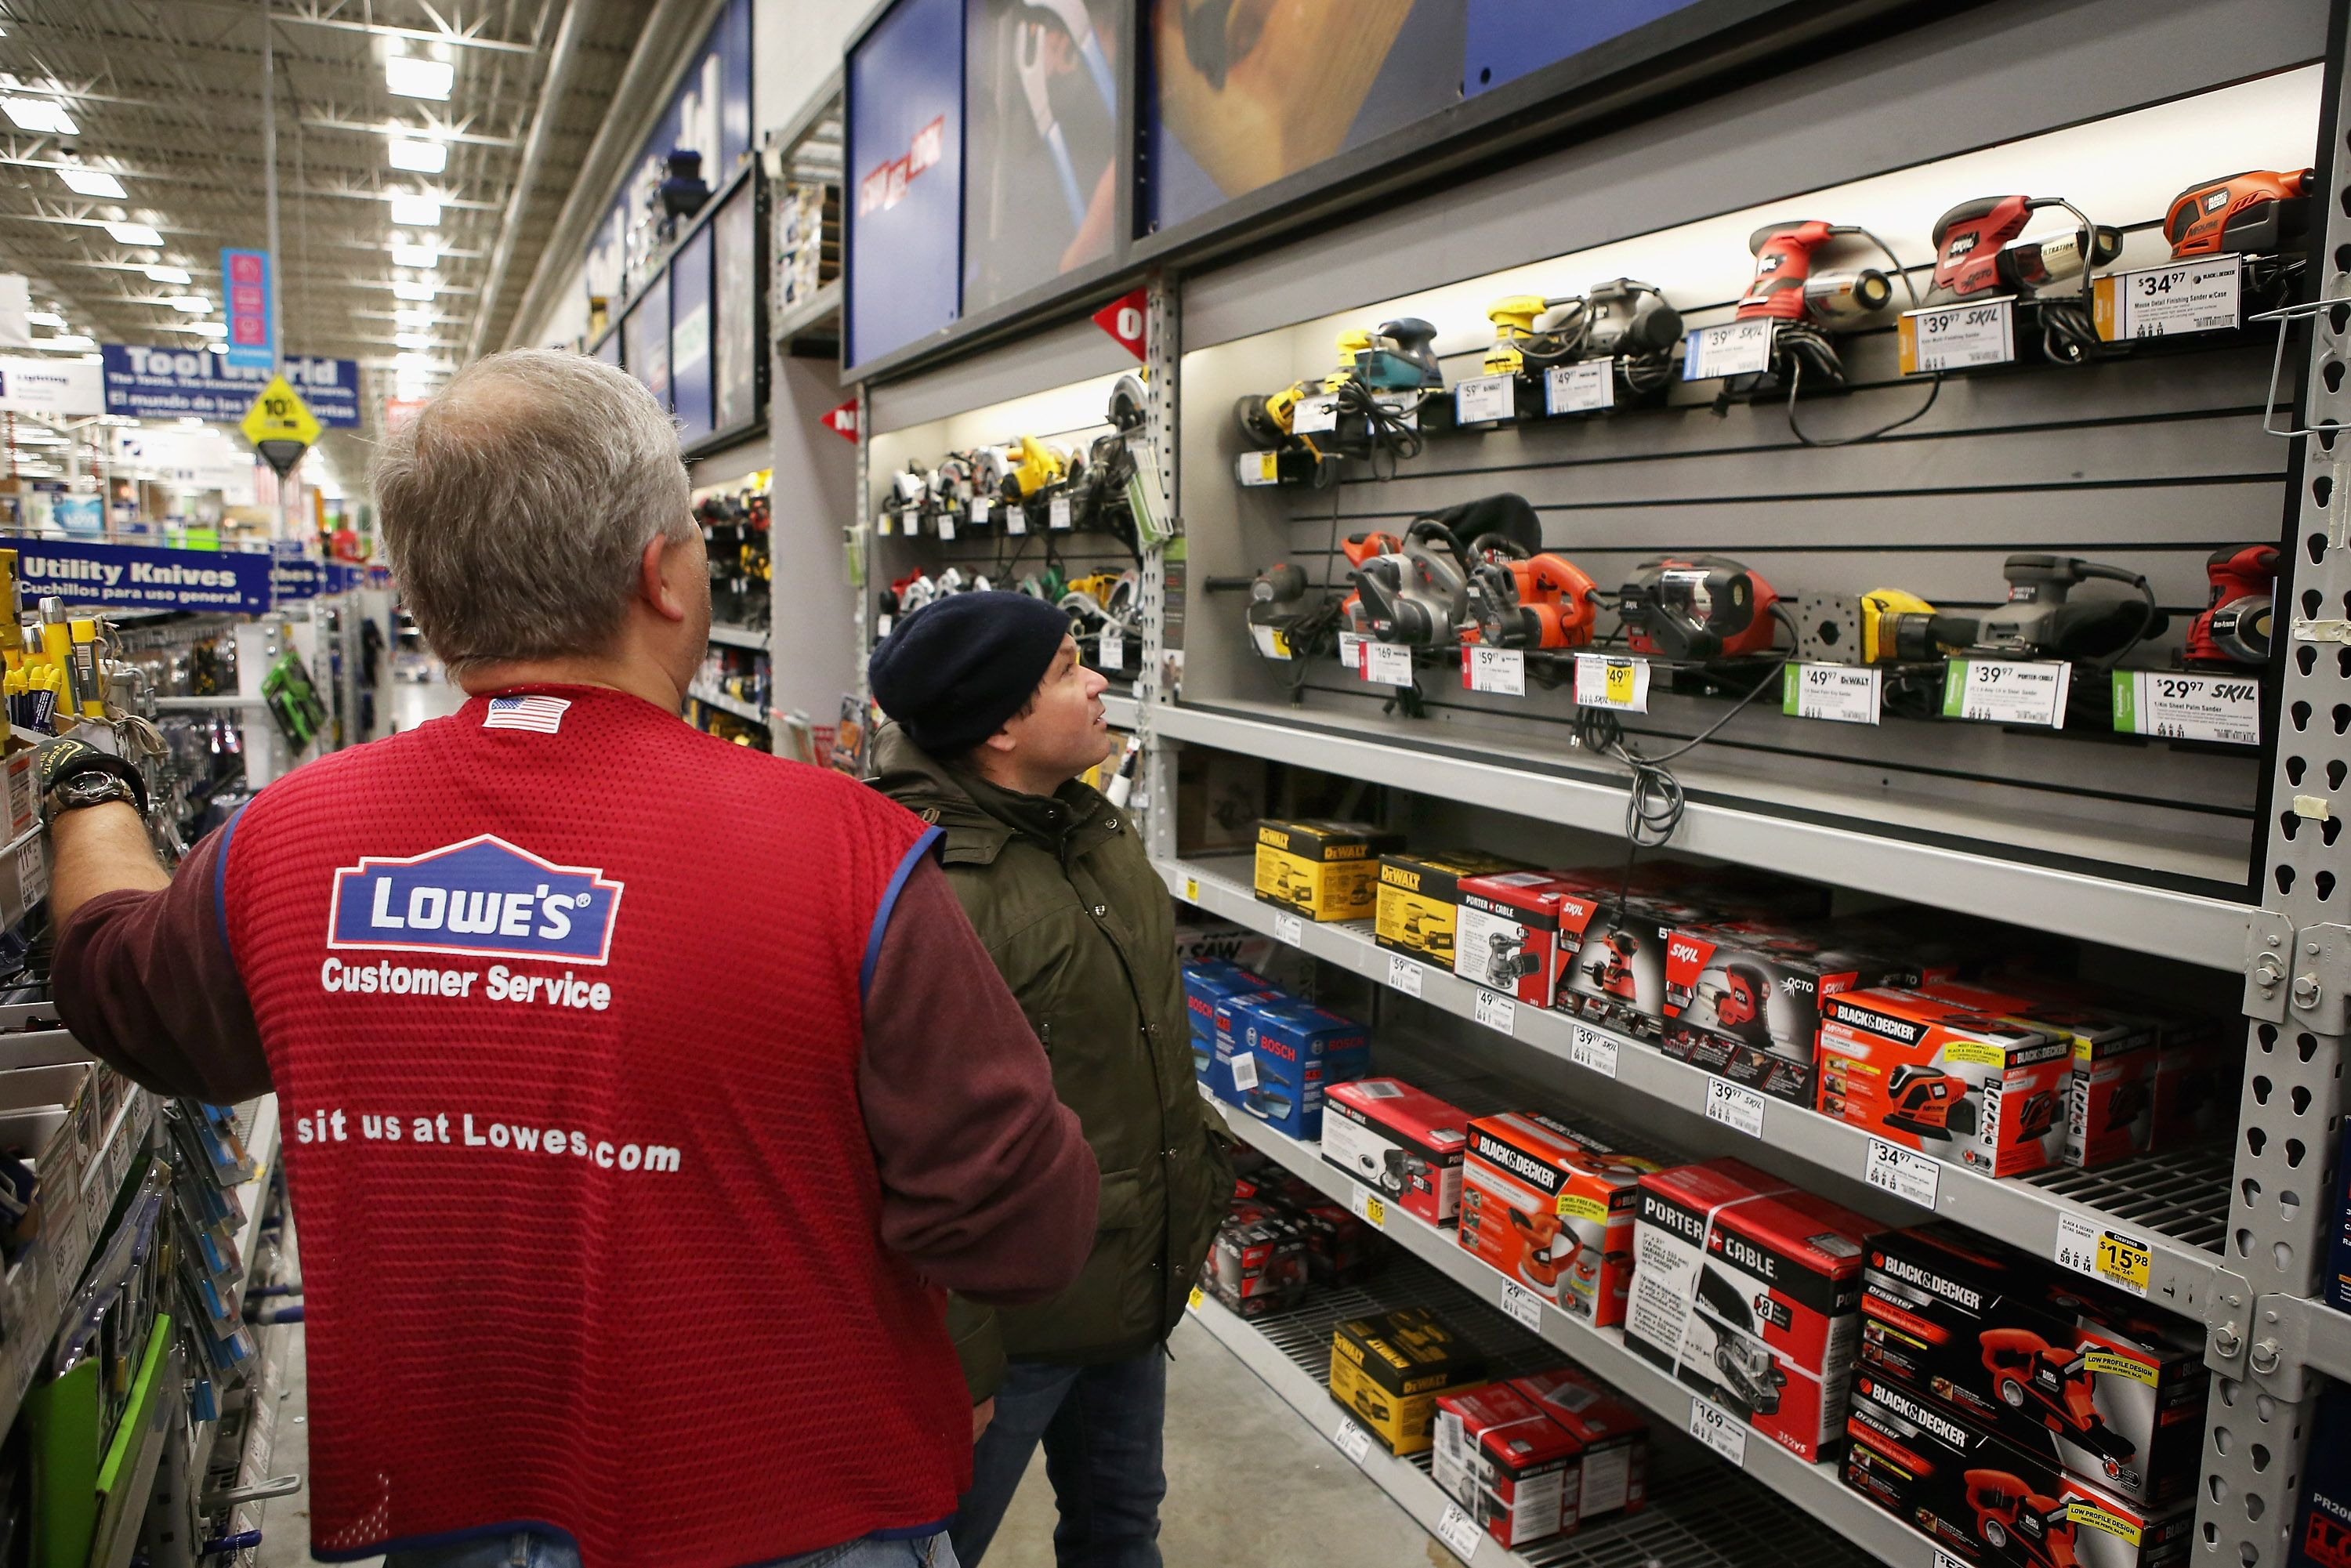 Home Depot Lowes Avoid The Retail Bloodbath With Strong Earnings Lowe S Home Improvement Store Lowes Hardware Lowes Home Improvements